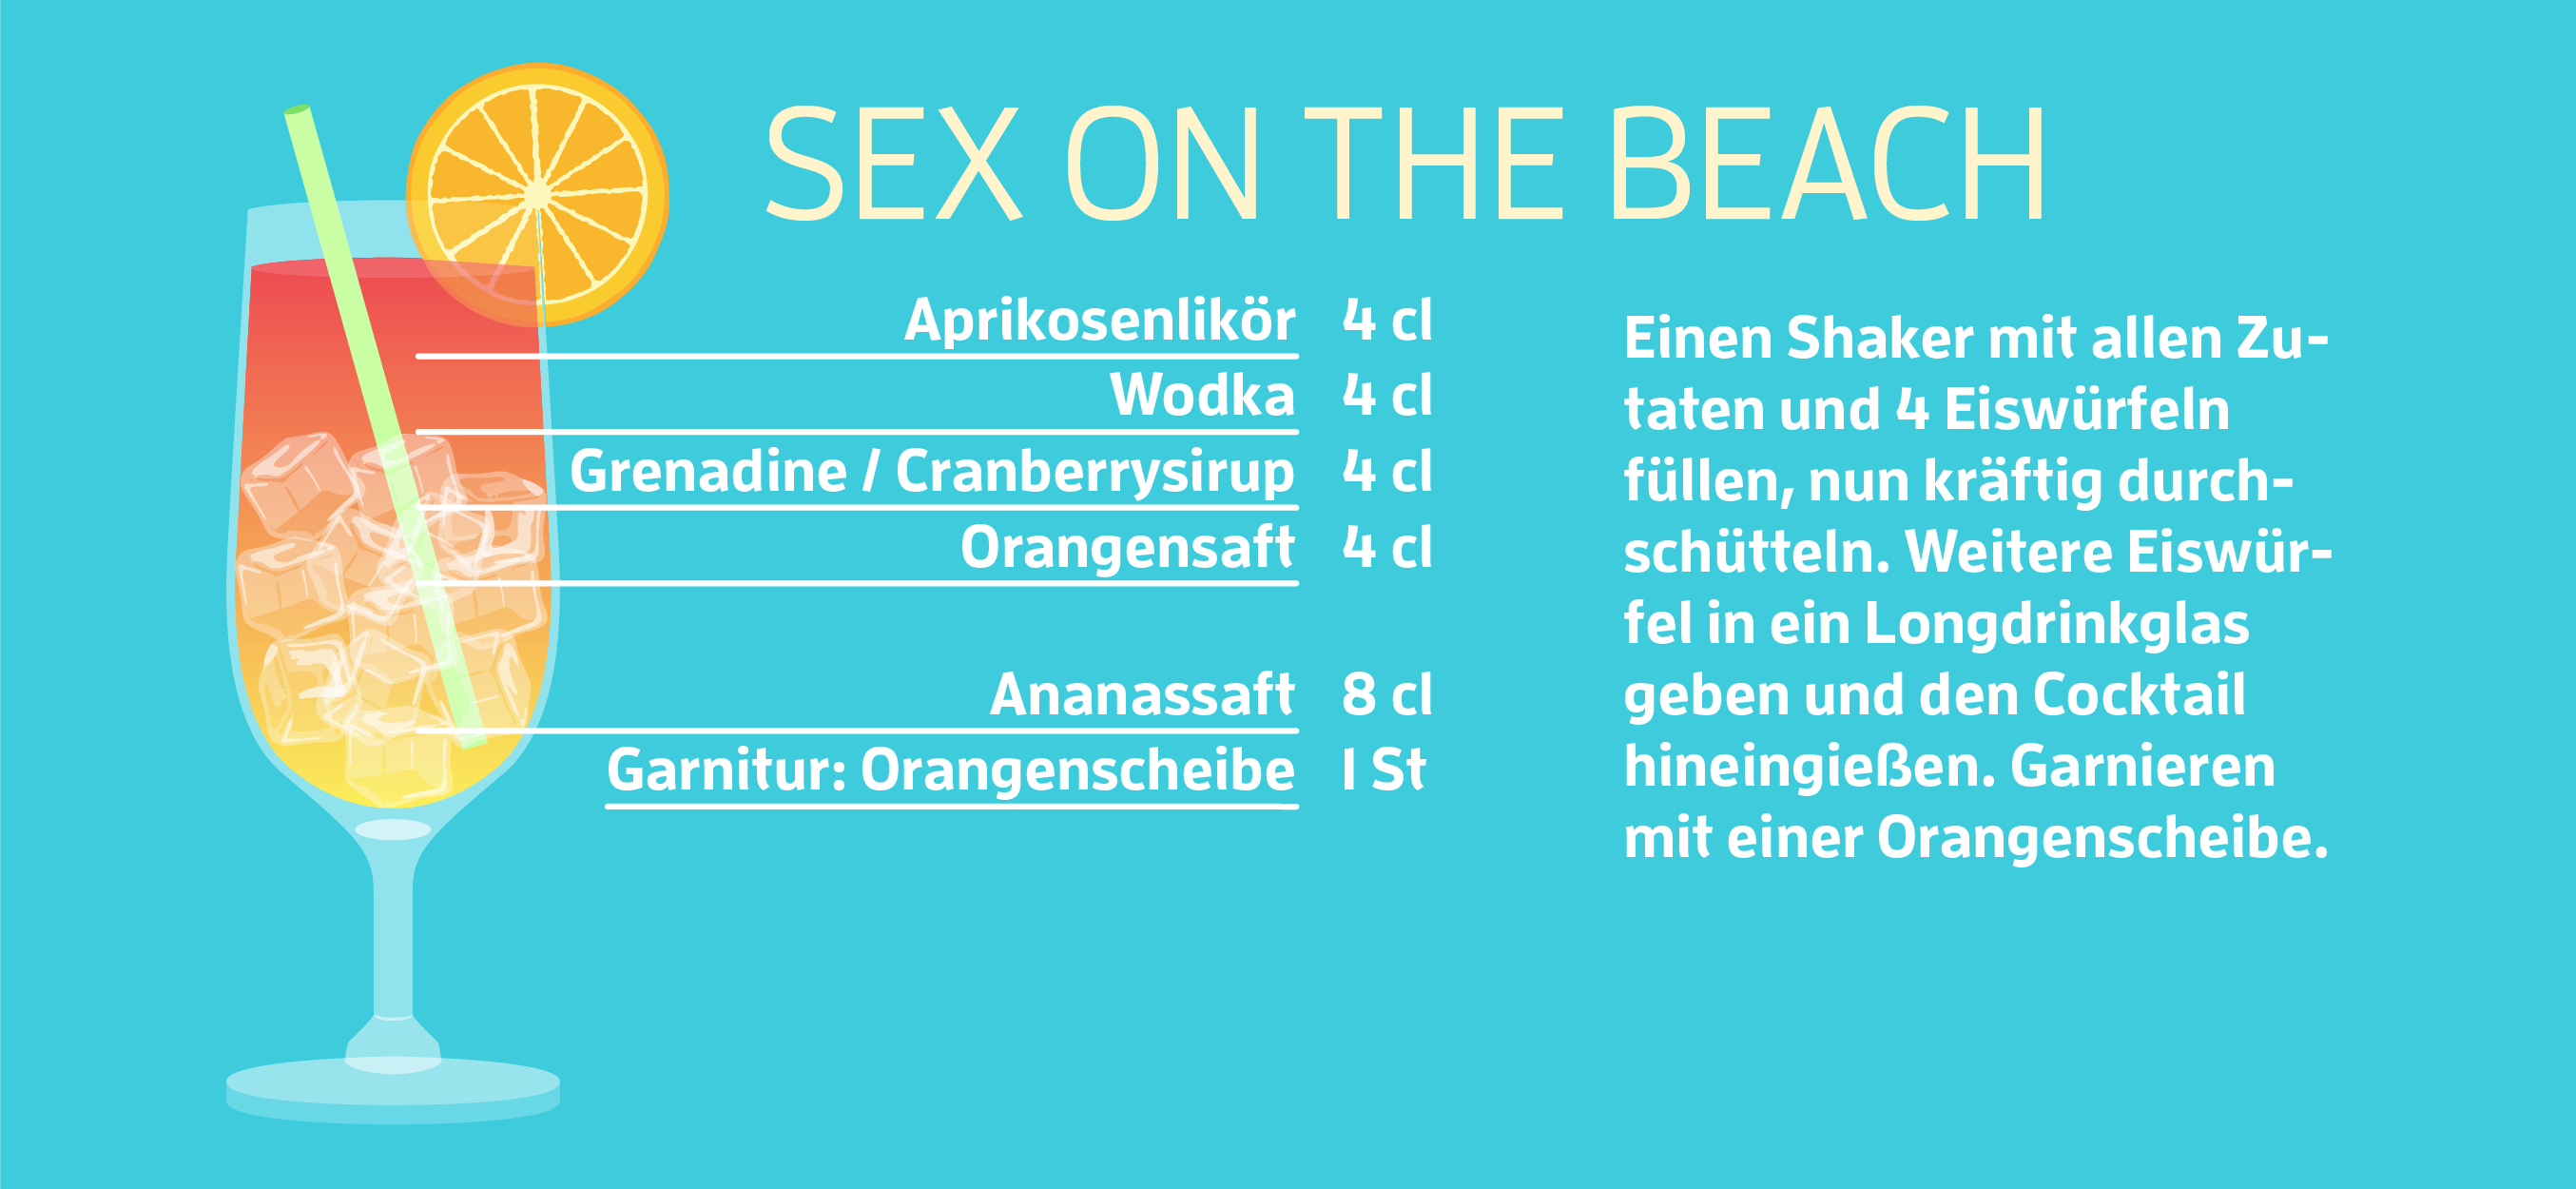 Cocktails Platz 1: Sex on the Beach Rezept